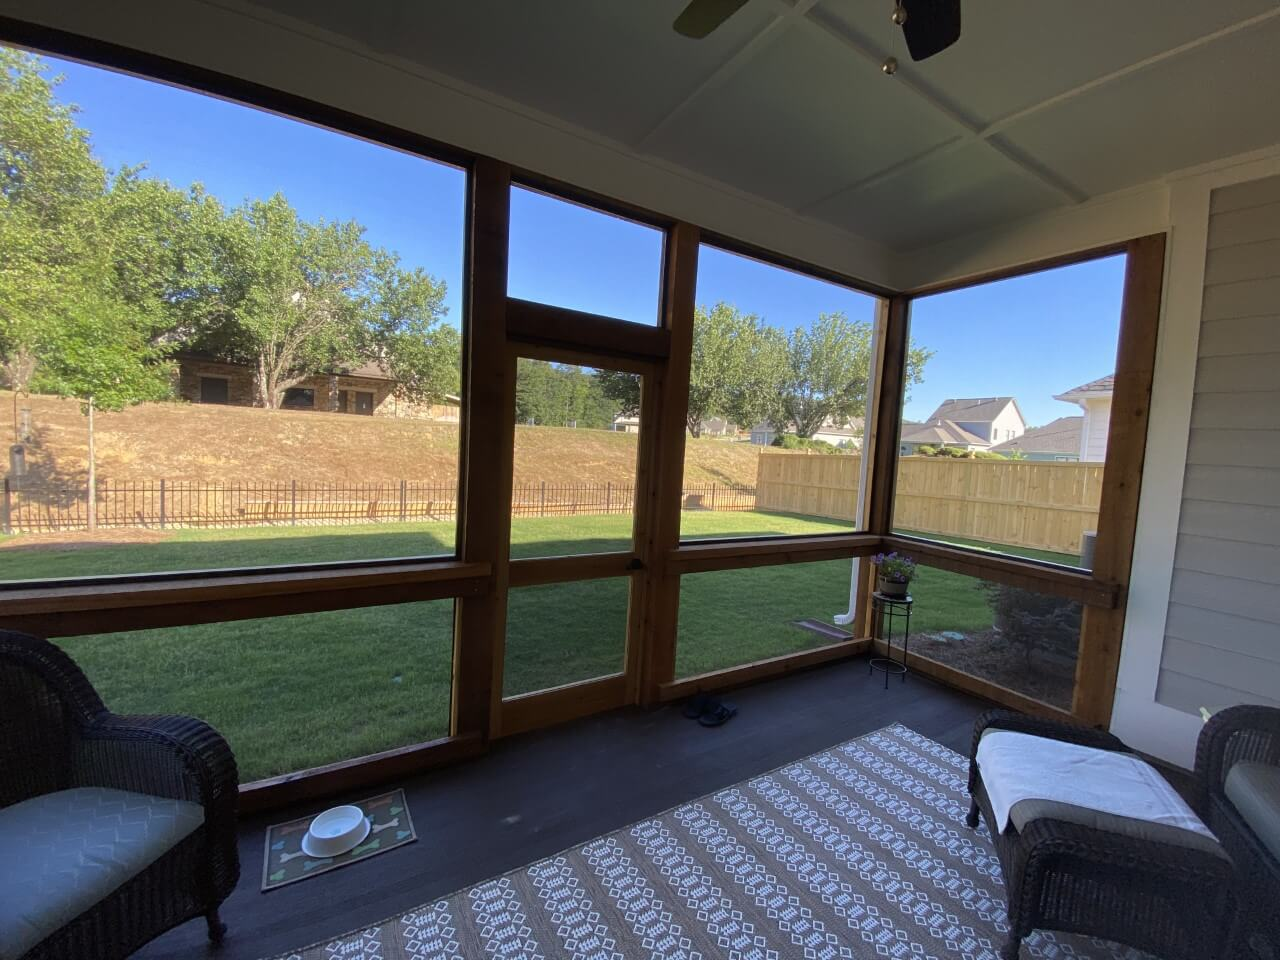 Backyard view from inside of screened porch